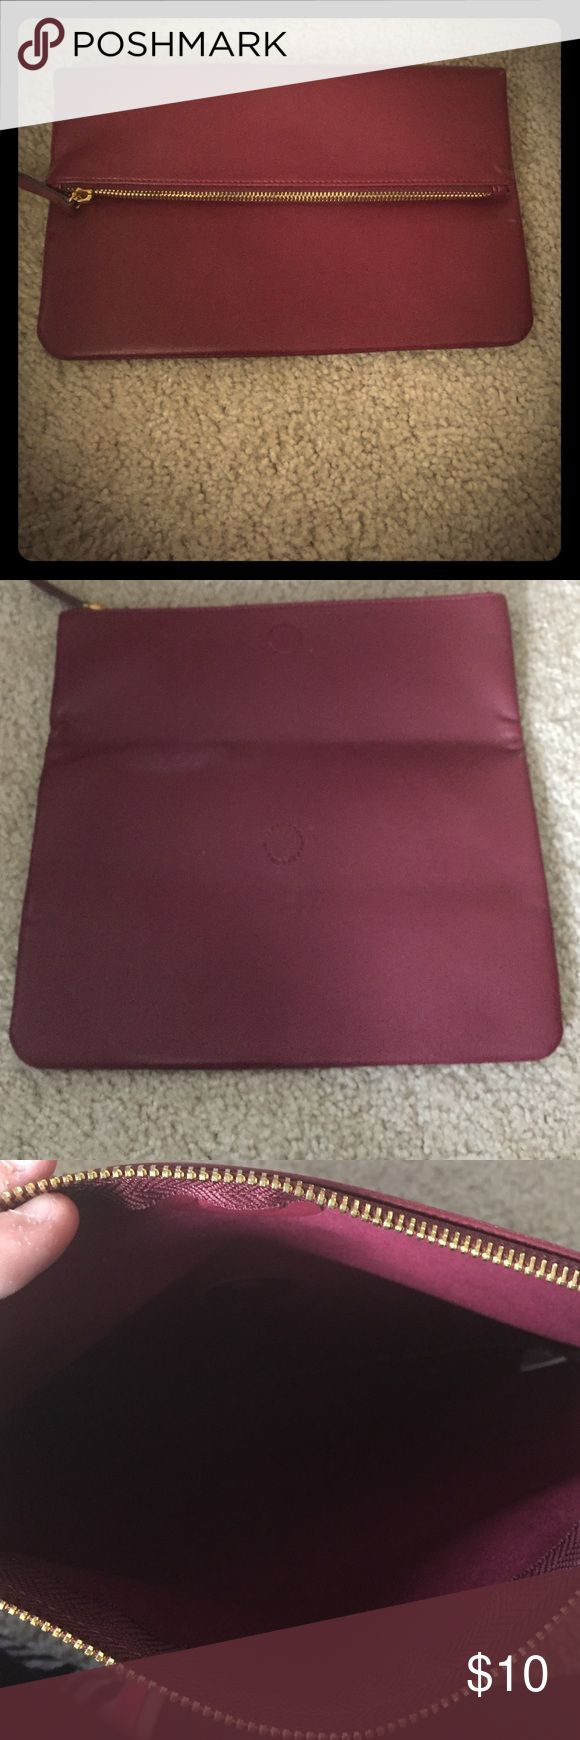 Old Navy Clutch New Old Navy Clutch never used Old Navy Bags Clutches & Wristlets